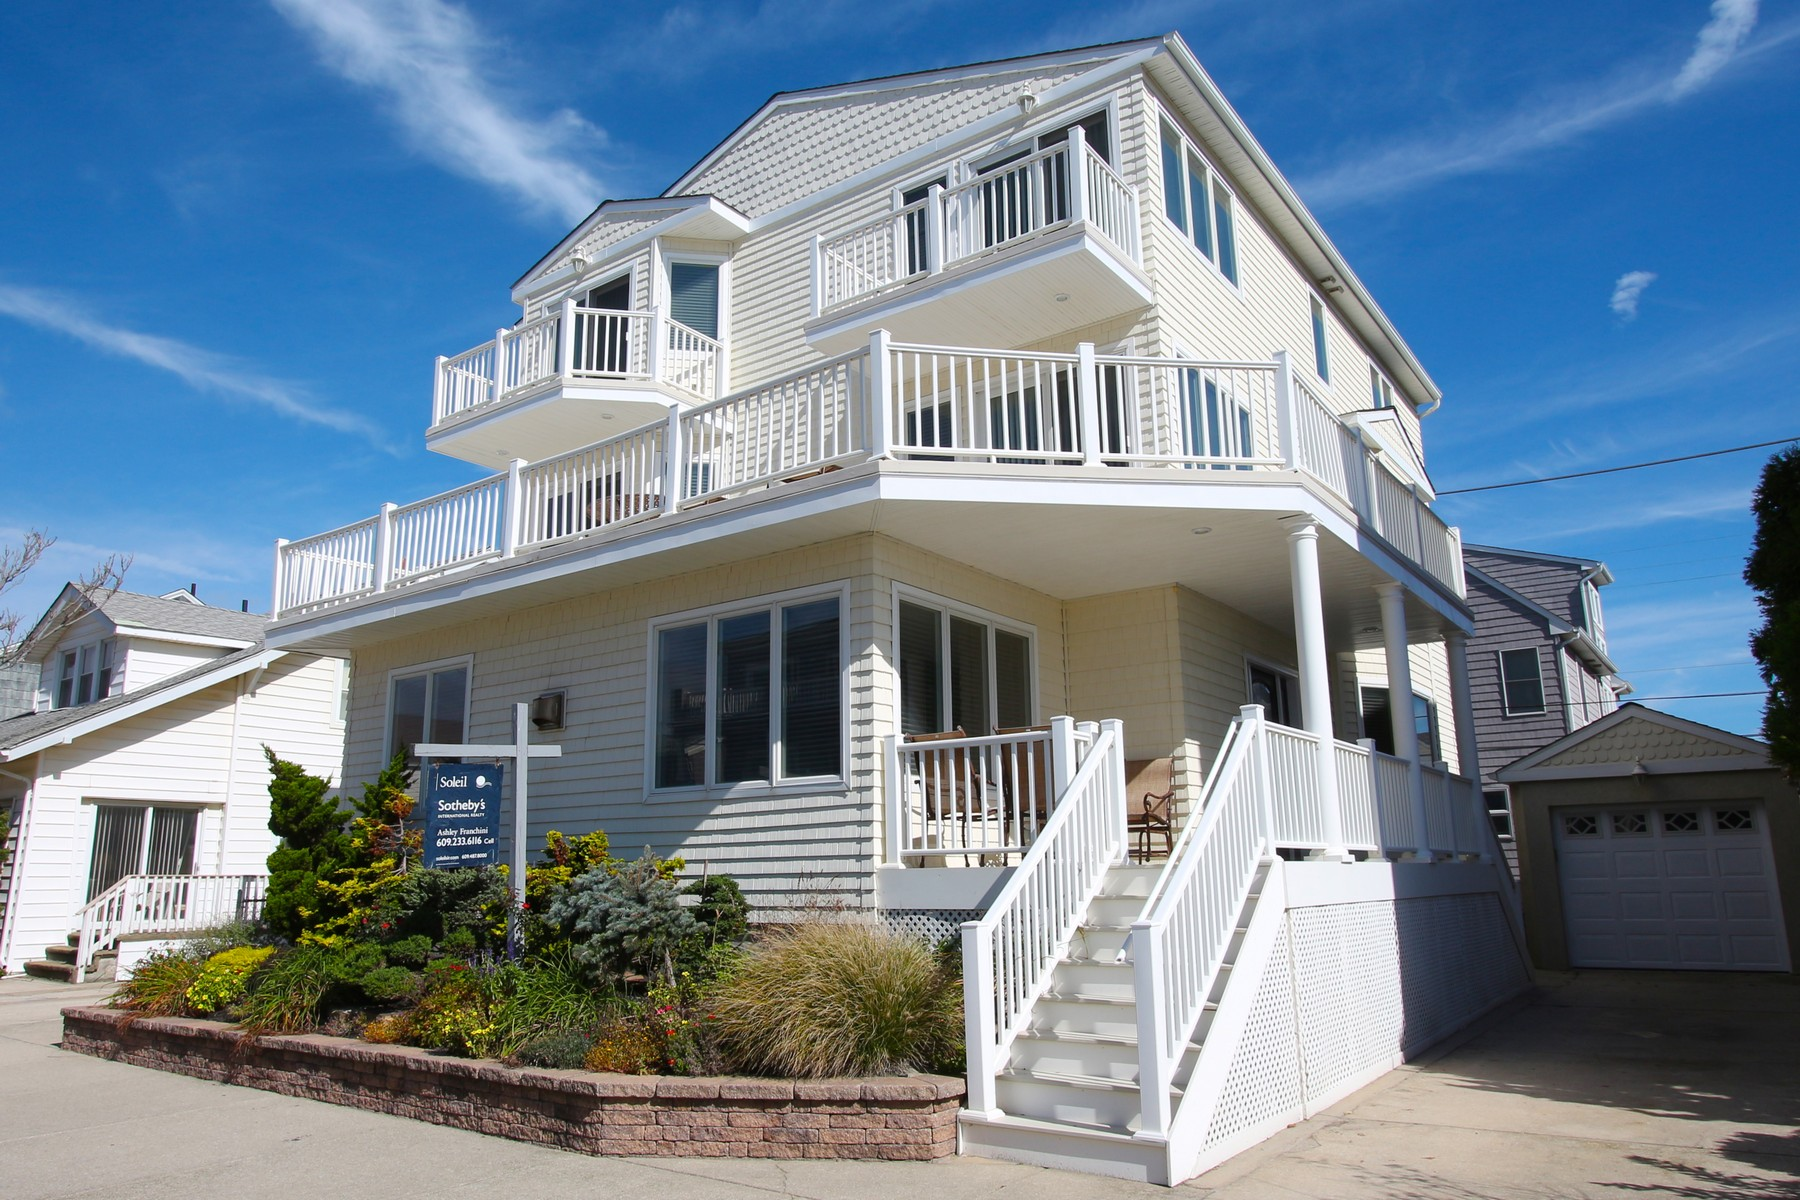 Casa Unifamiliar por un Venta en 109 S Richards Ave 109 S Richards Ave BEACHBLOCK Ventnor, Nueva Jersey, 08402 Estados Unidos